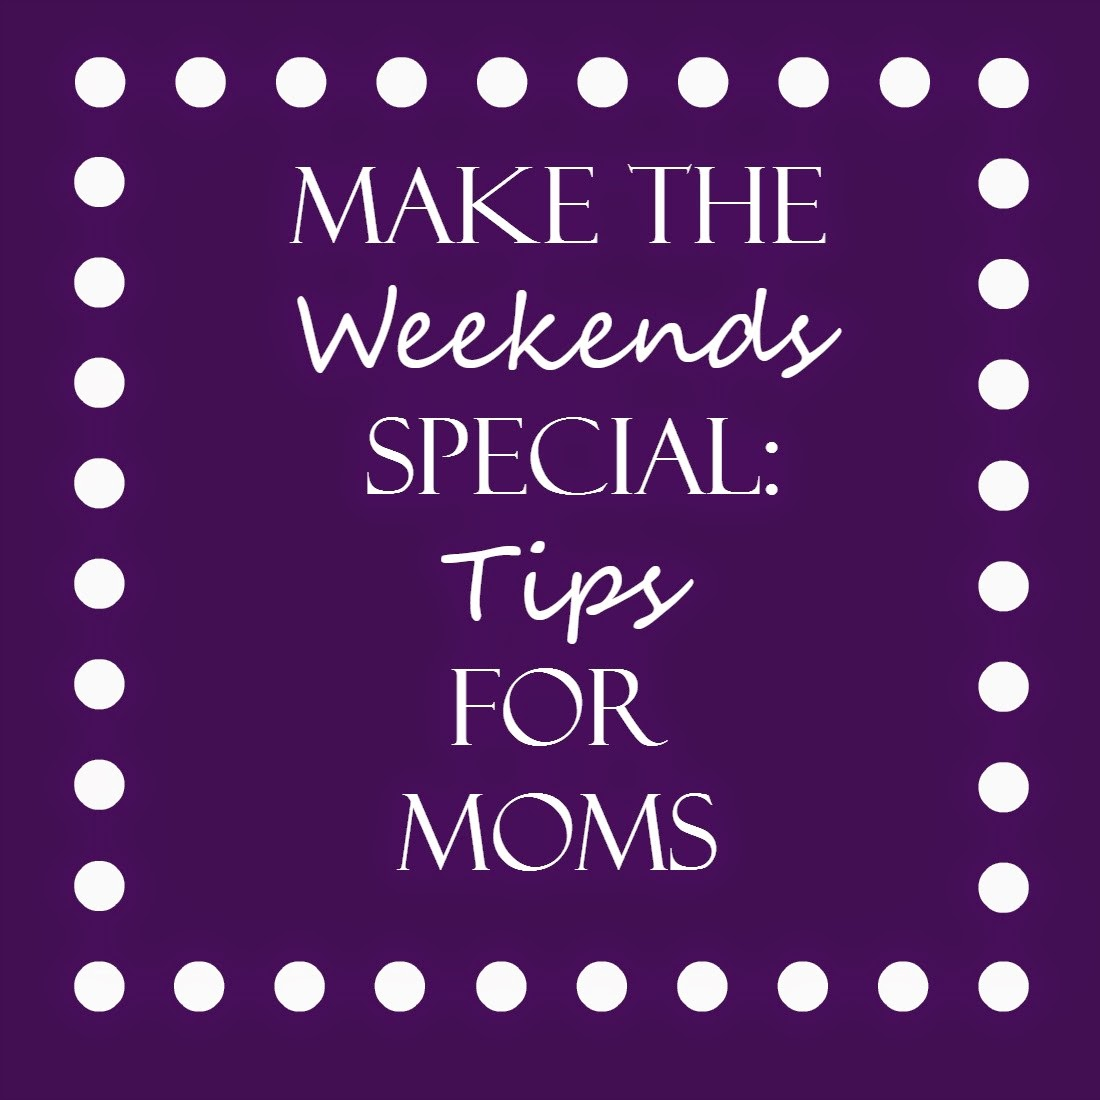 Tips for stay at home moms